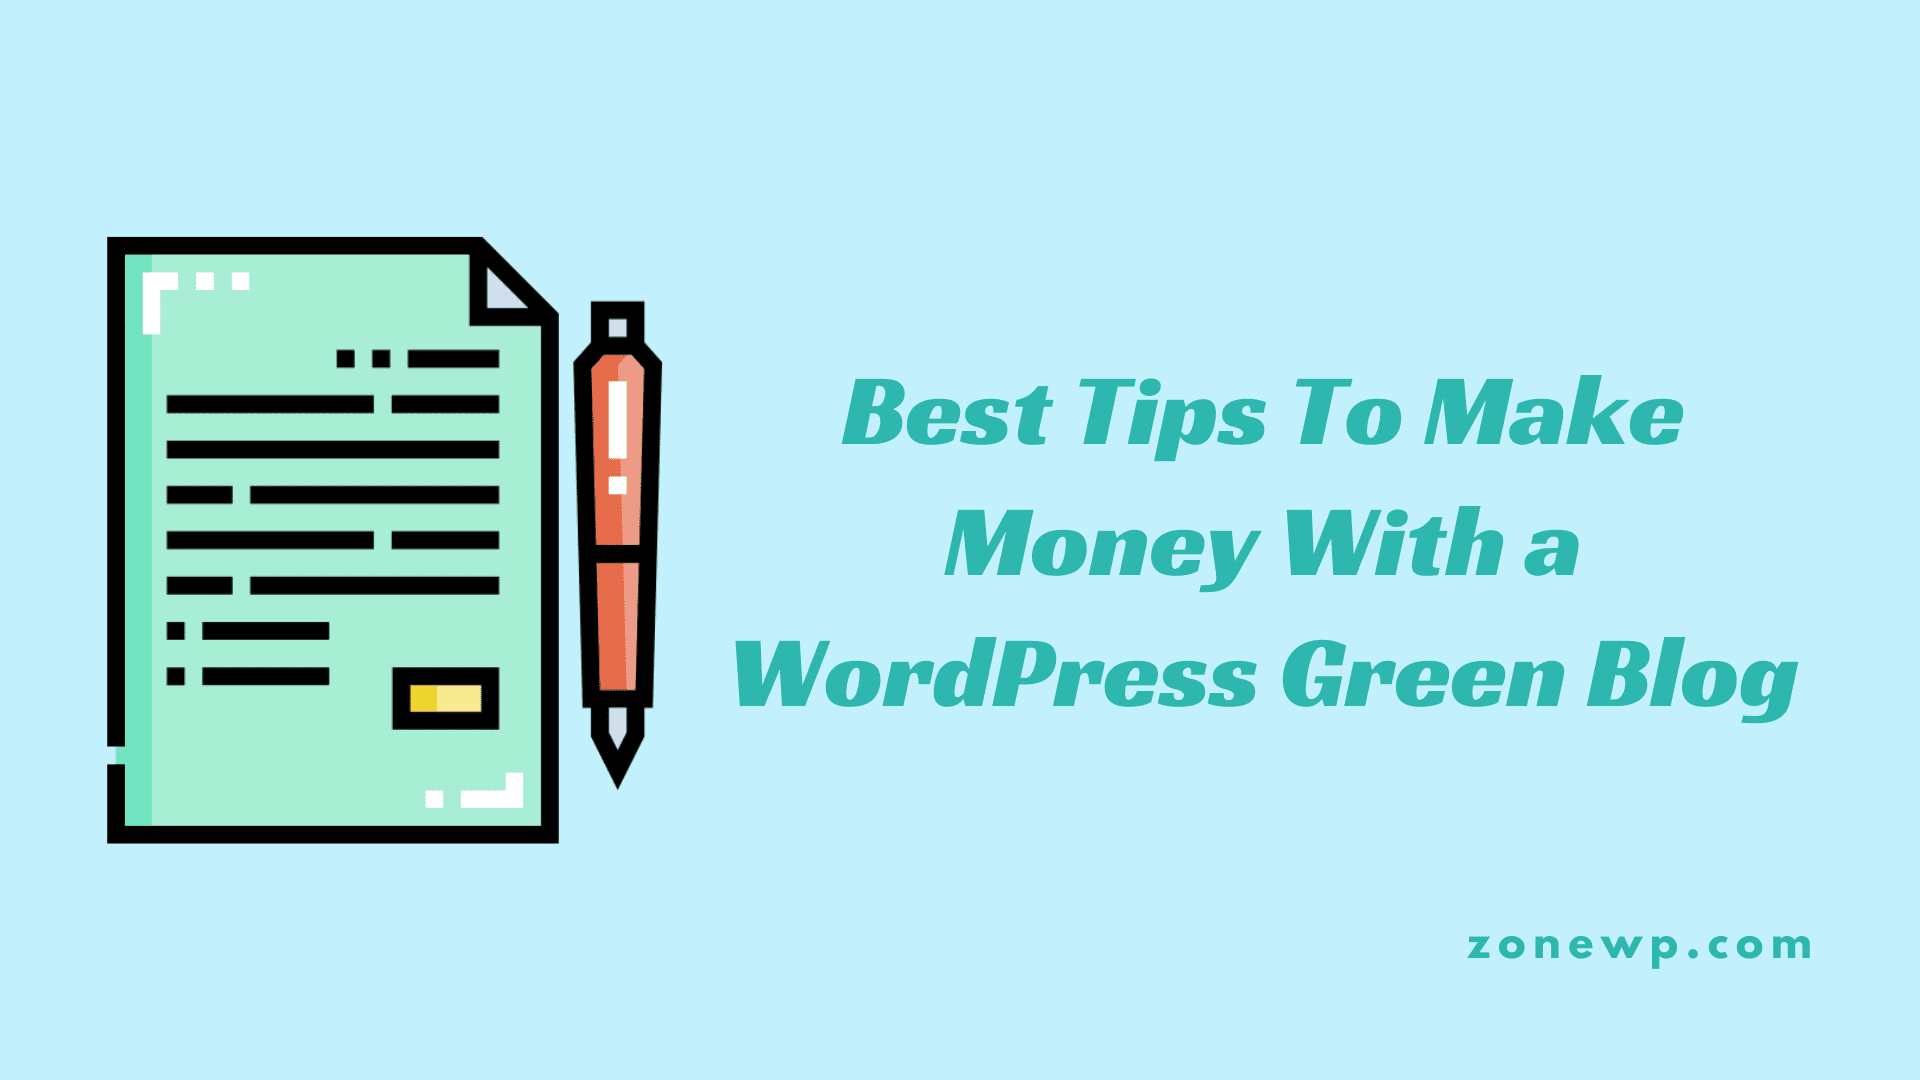 Best Tips To Make Money With a WordPress Green Blog